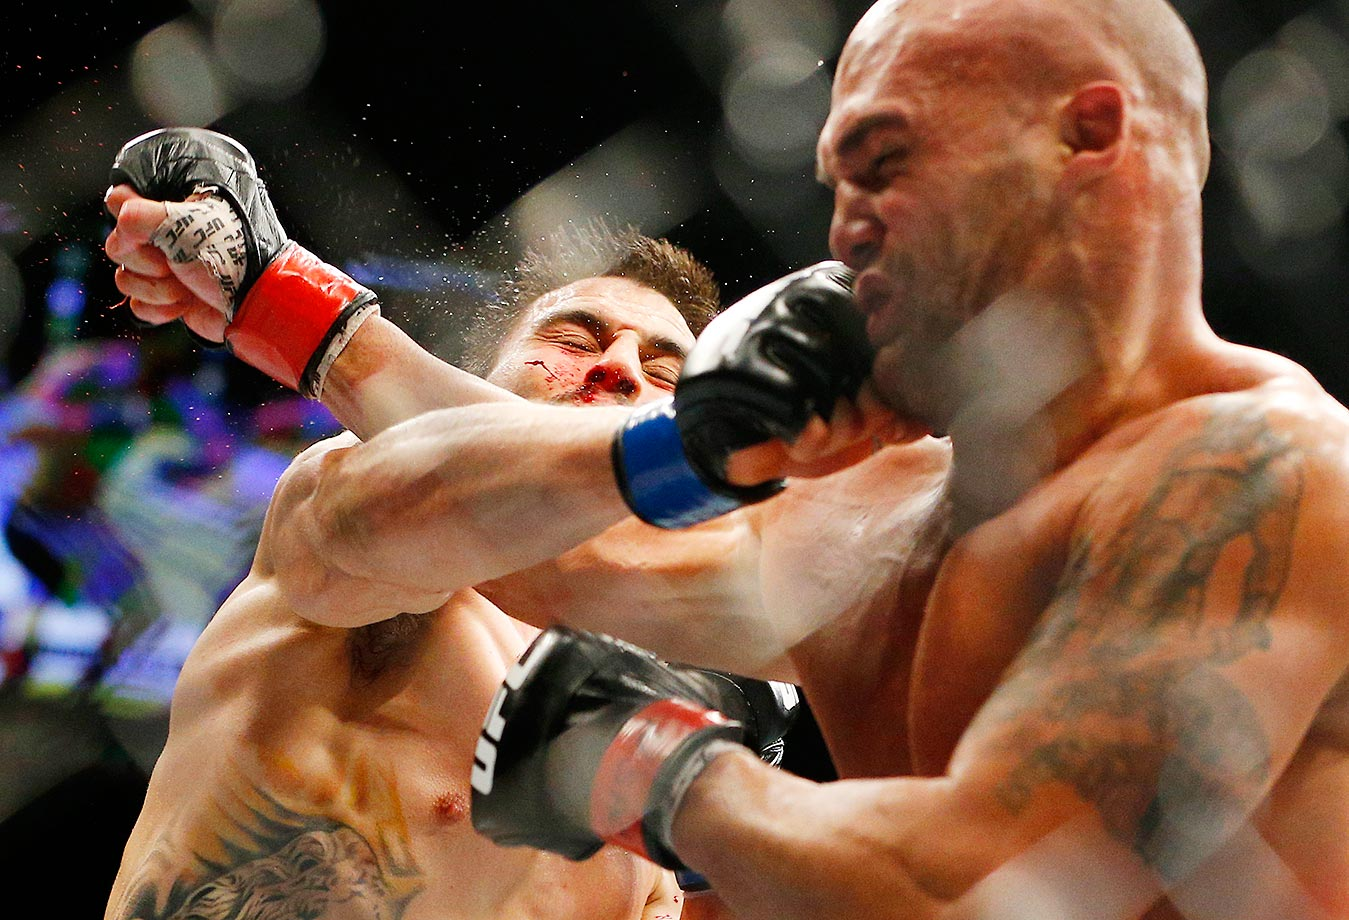 Robbie Lawler, right, trades blows with Carlos Condit during a welterweight championship MMA bout at UFC 195.